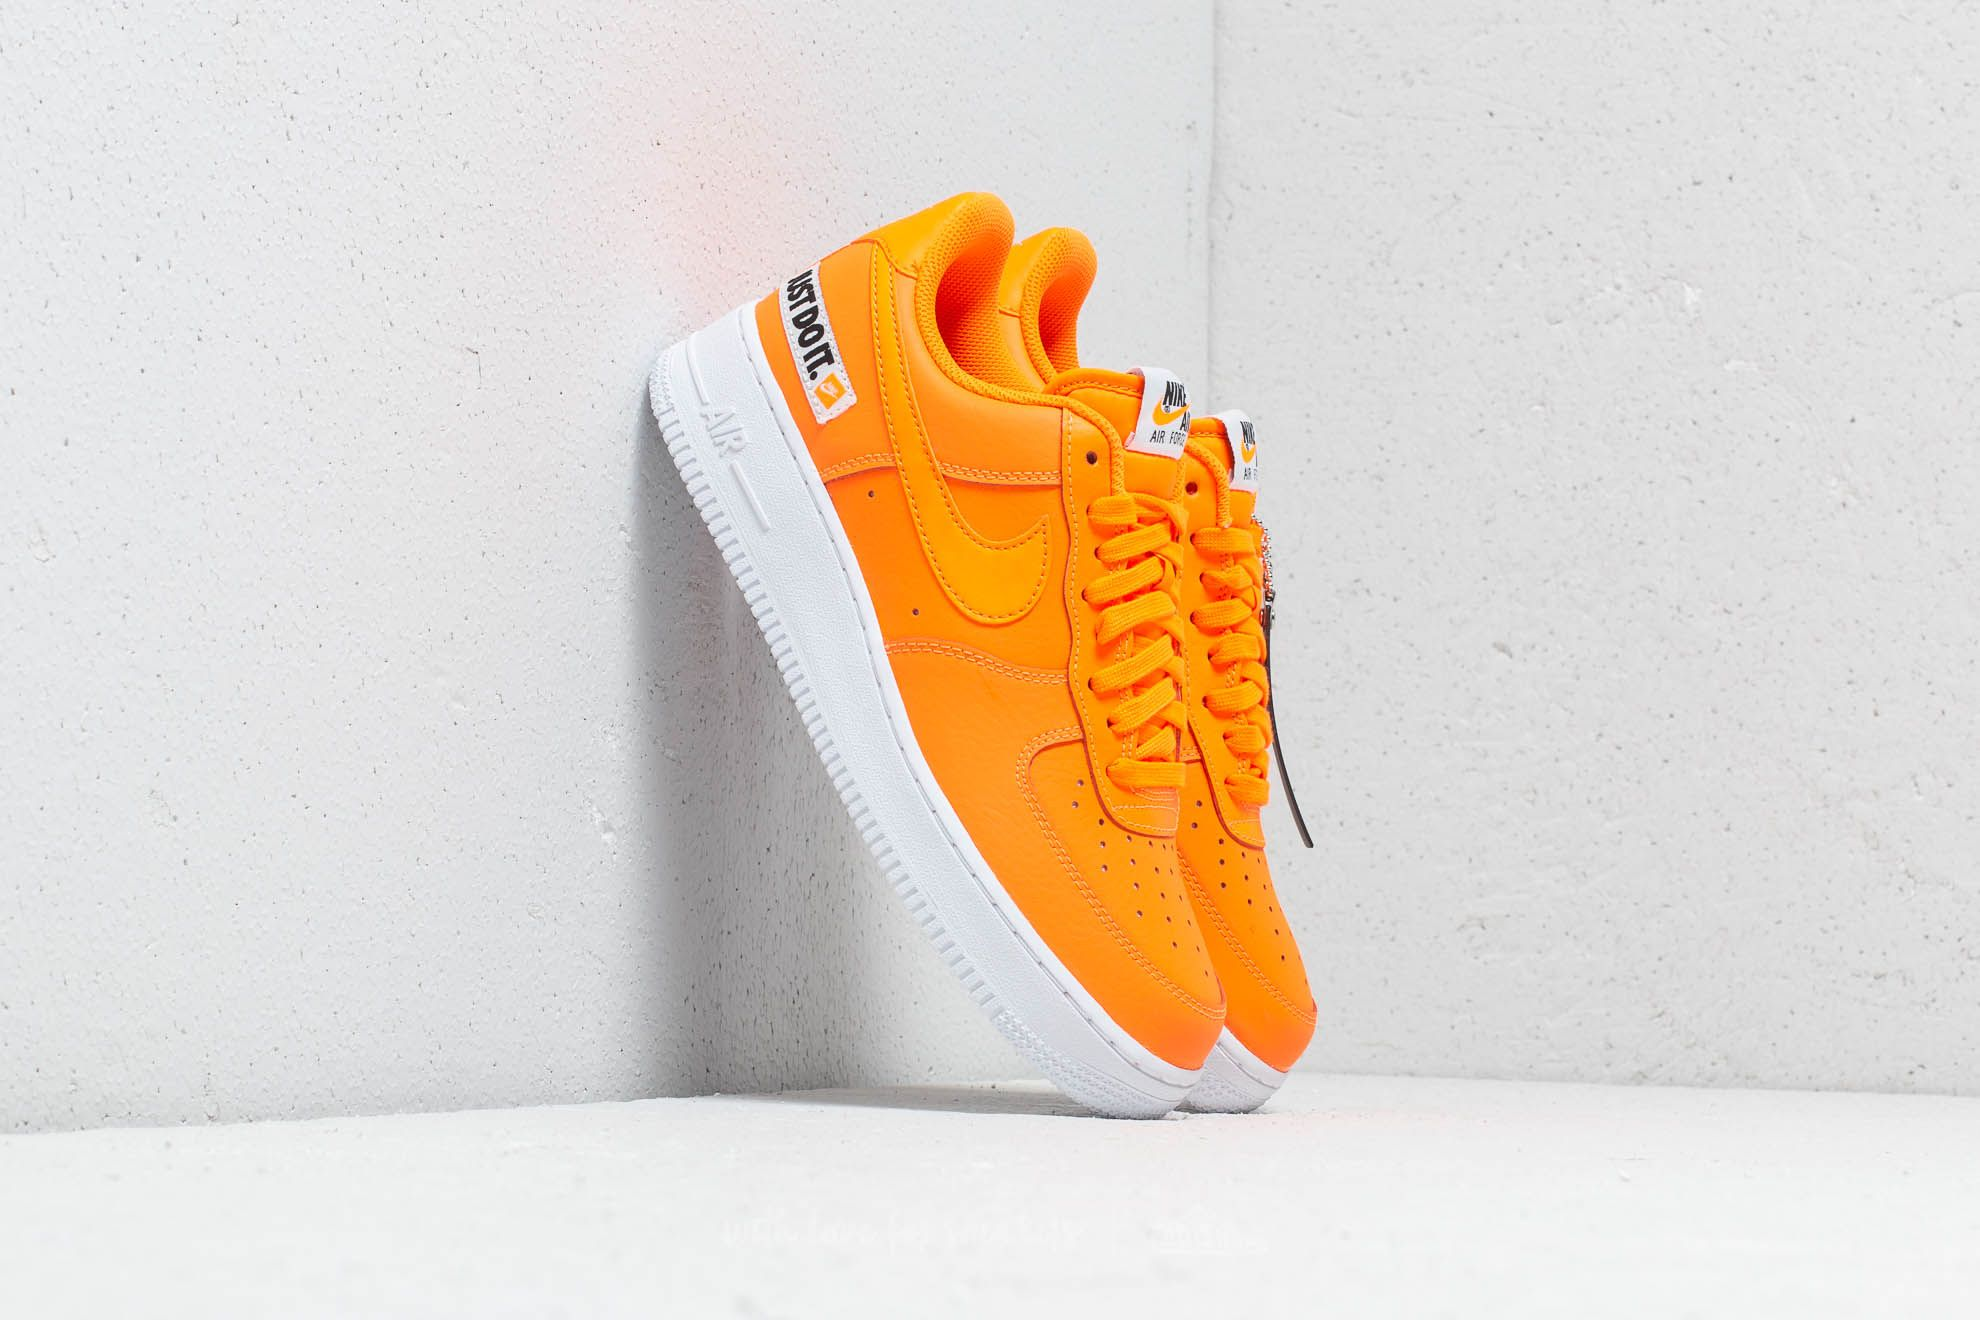 Nike Air Force 1'07 Lv8 Jdi Sneakers arancioni con logo